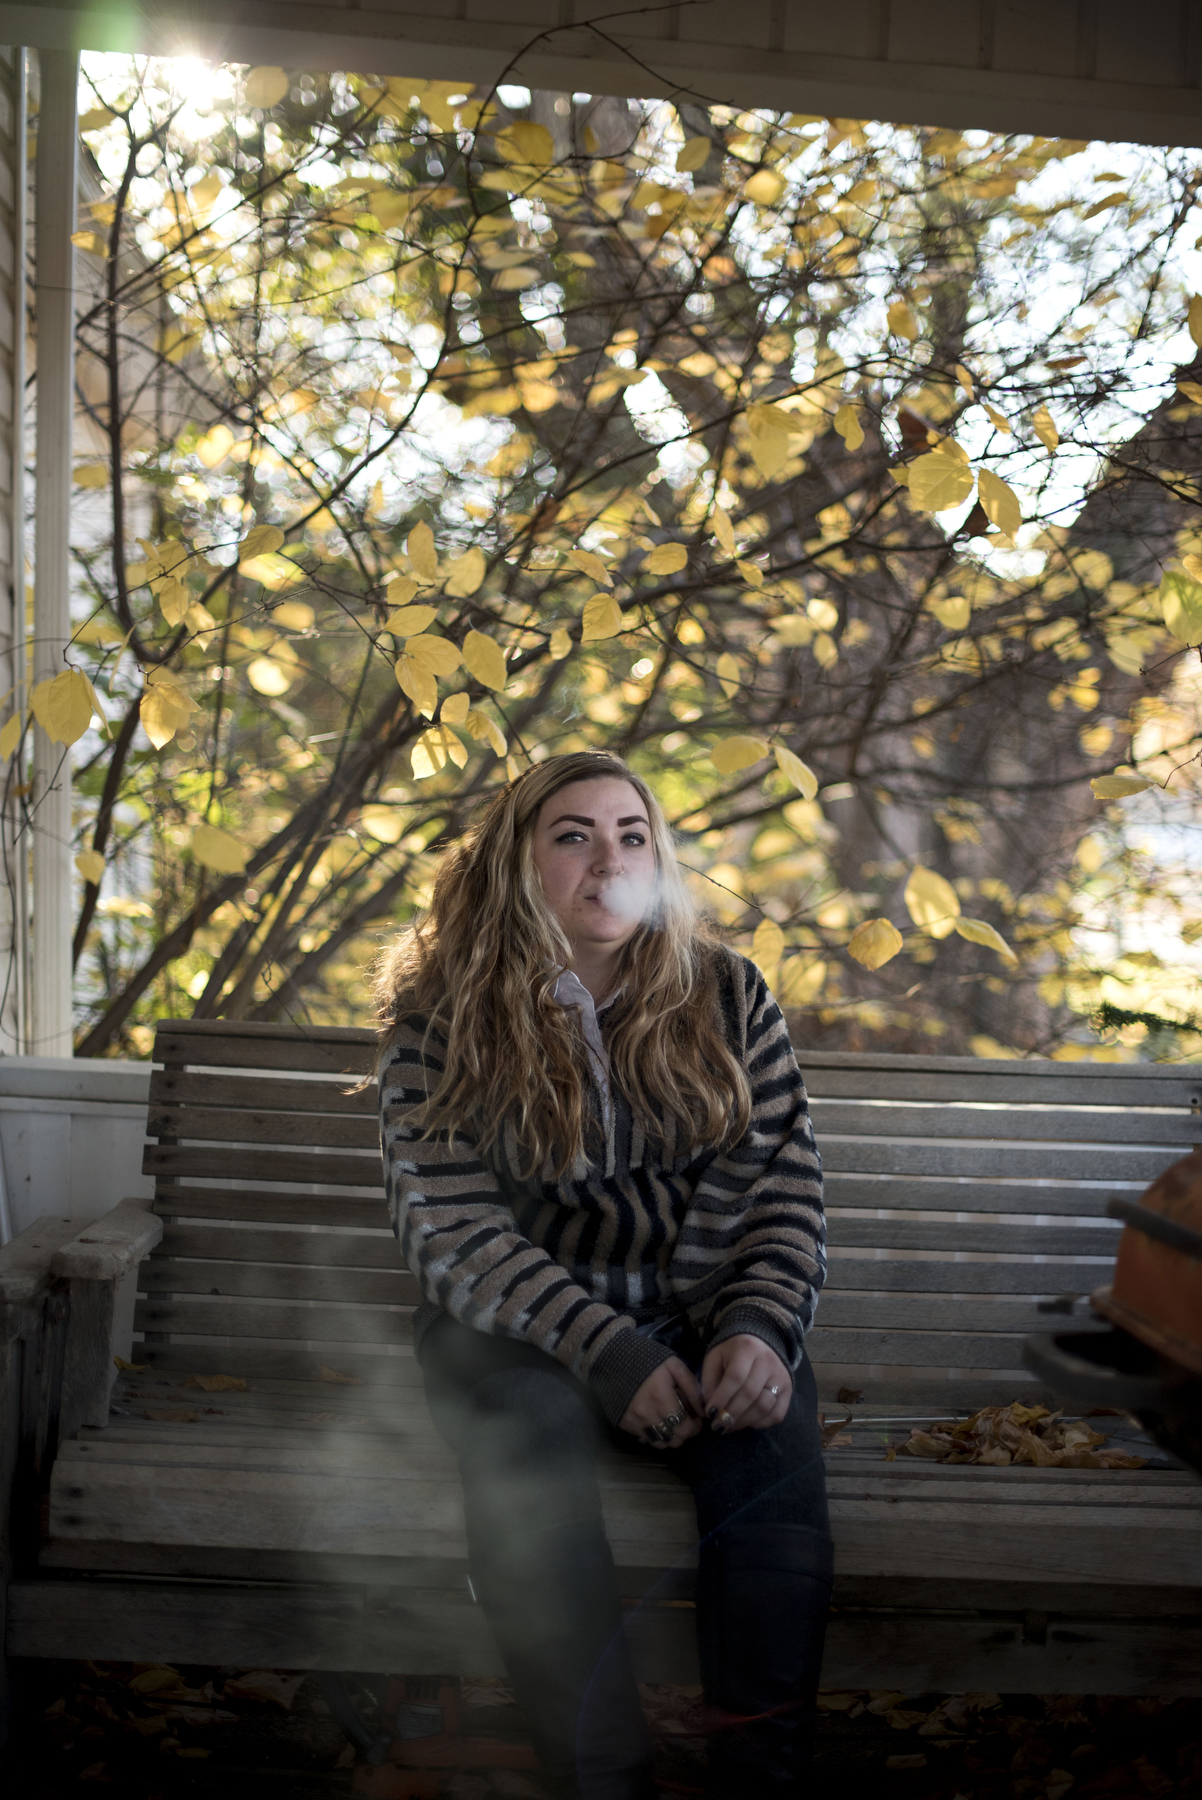 Kaylee Perkins poses for a portrait on the porch of her boyfriend's house in Coolville, Ohio on Nov. 5, 2016. Perkins works at the Uptown Grill in Athens, Ohio.